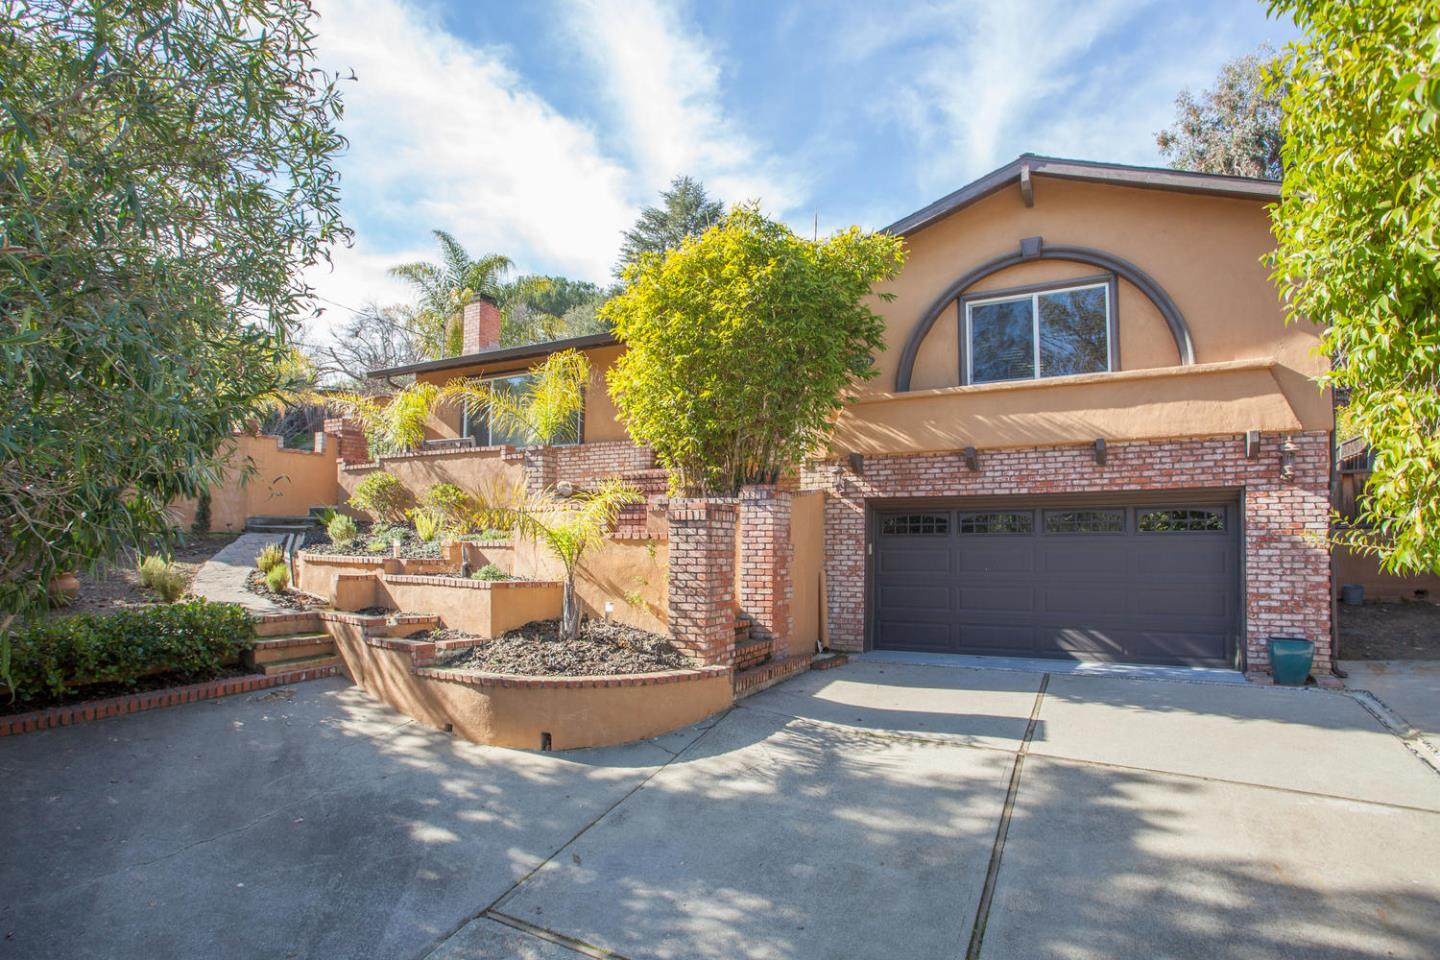 Single Family Home for Sale at 15011 Winchester Boulevard Monte Sereno, California 95030 United States